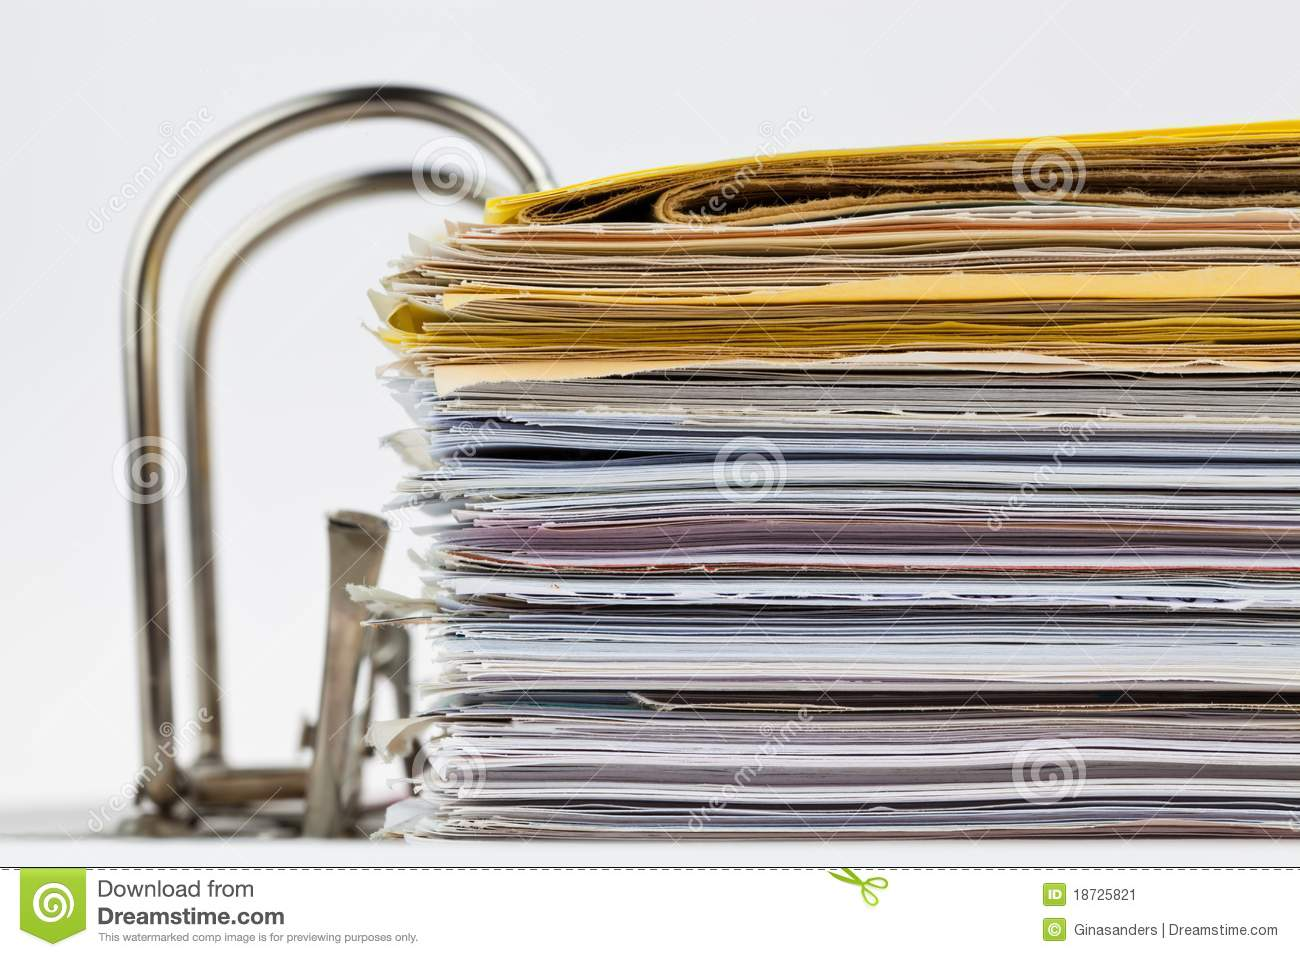 in documents how to put documents in a file folder